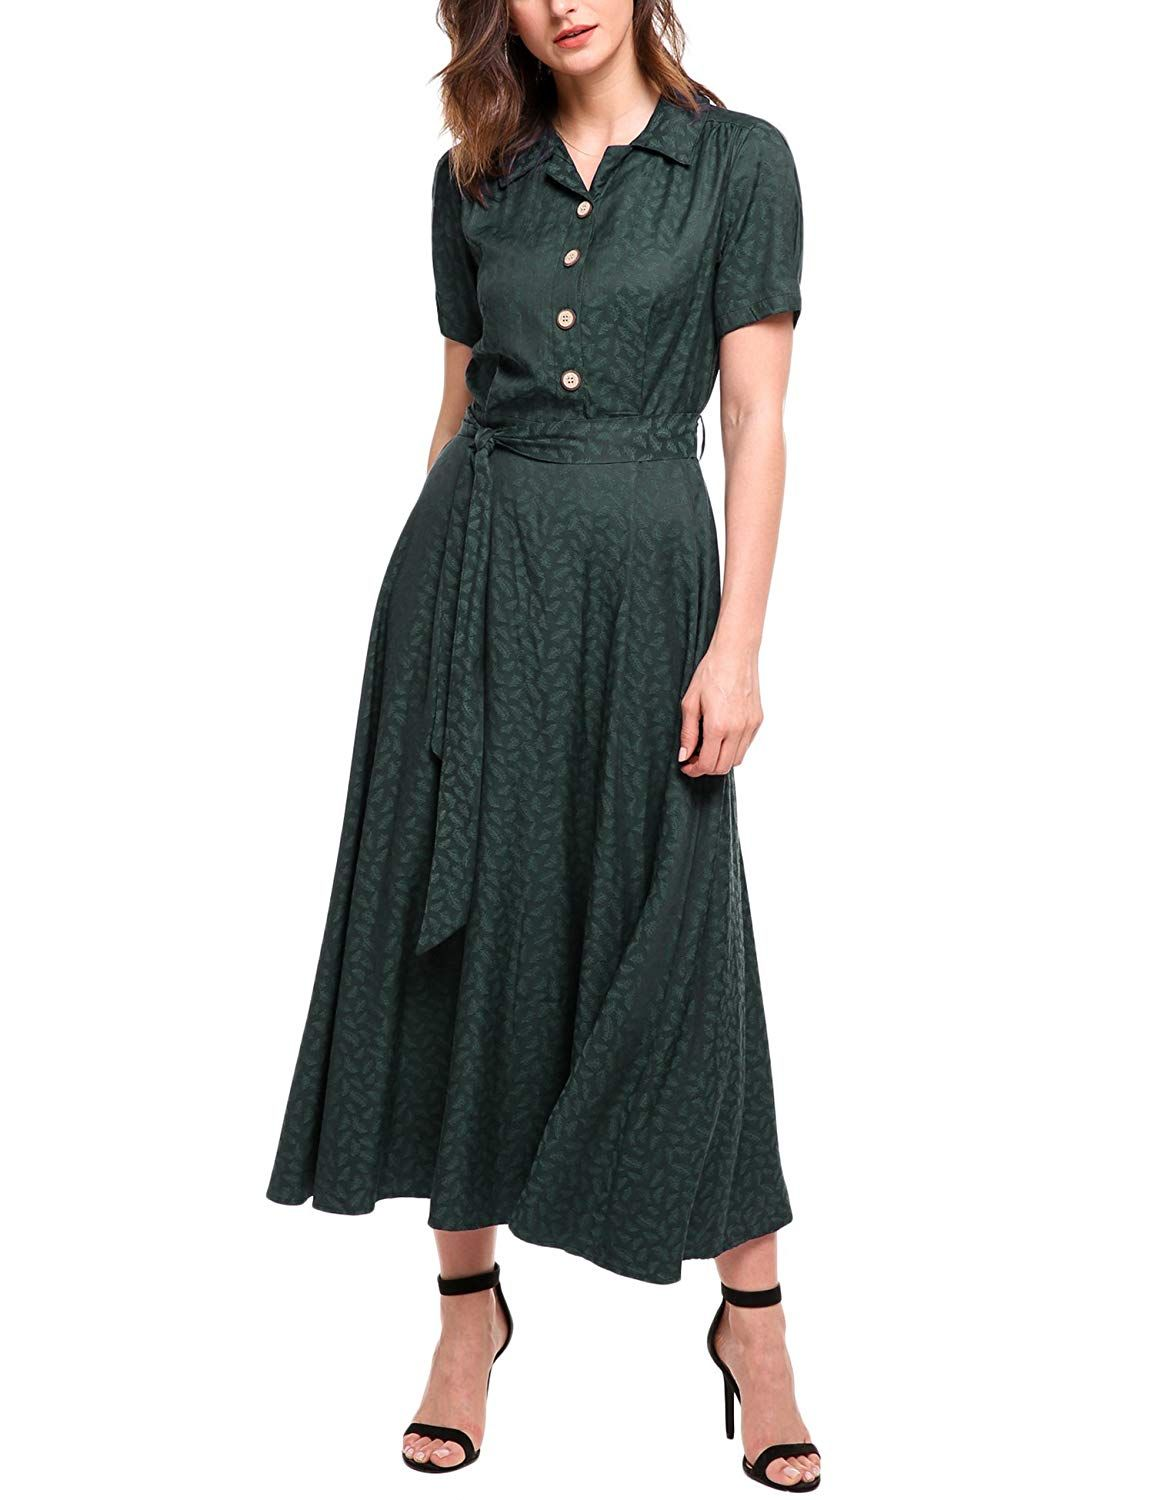 2019 Spring Women Fashion Dot Print Chiffon Cardigan Dress Vintage Long Sleeve Turn-down Collar Elegant Party Dresses Vestidos Elegant Shape Women's Clothing